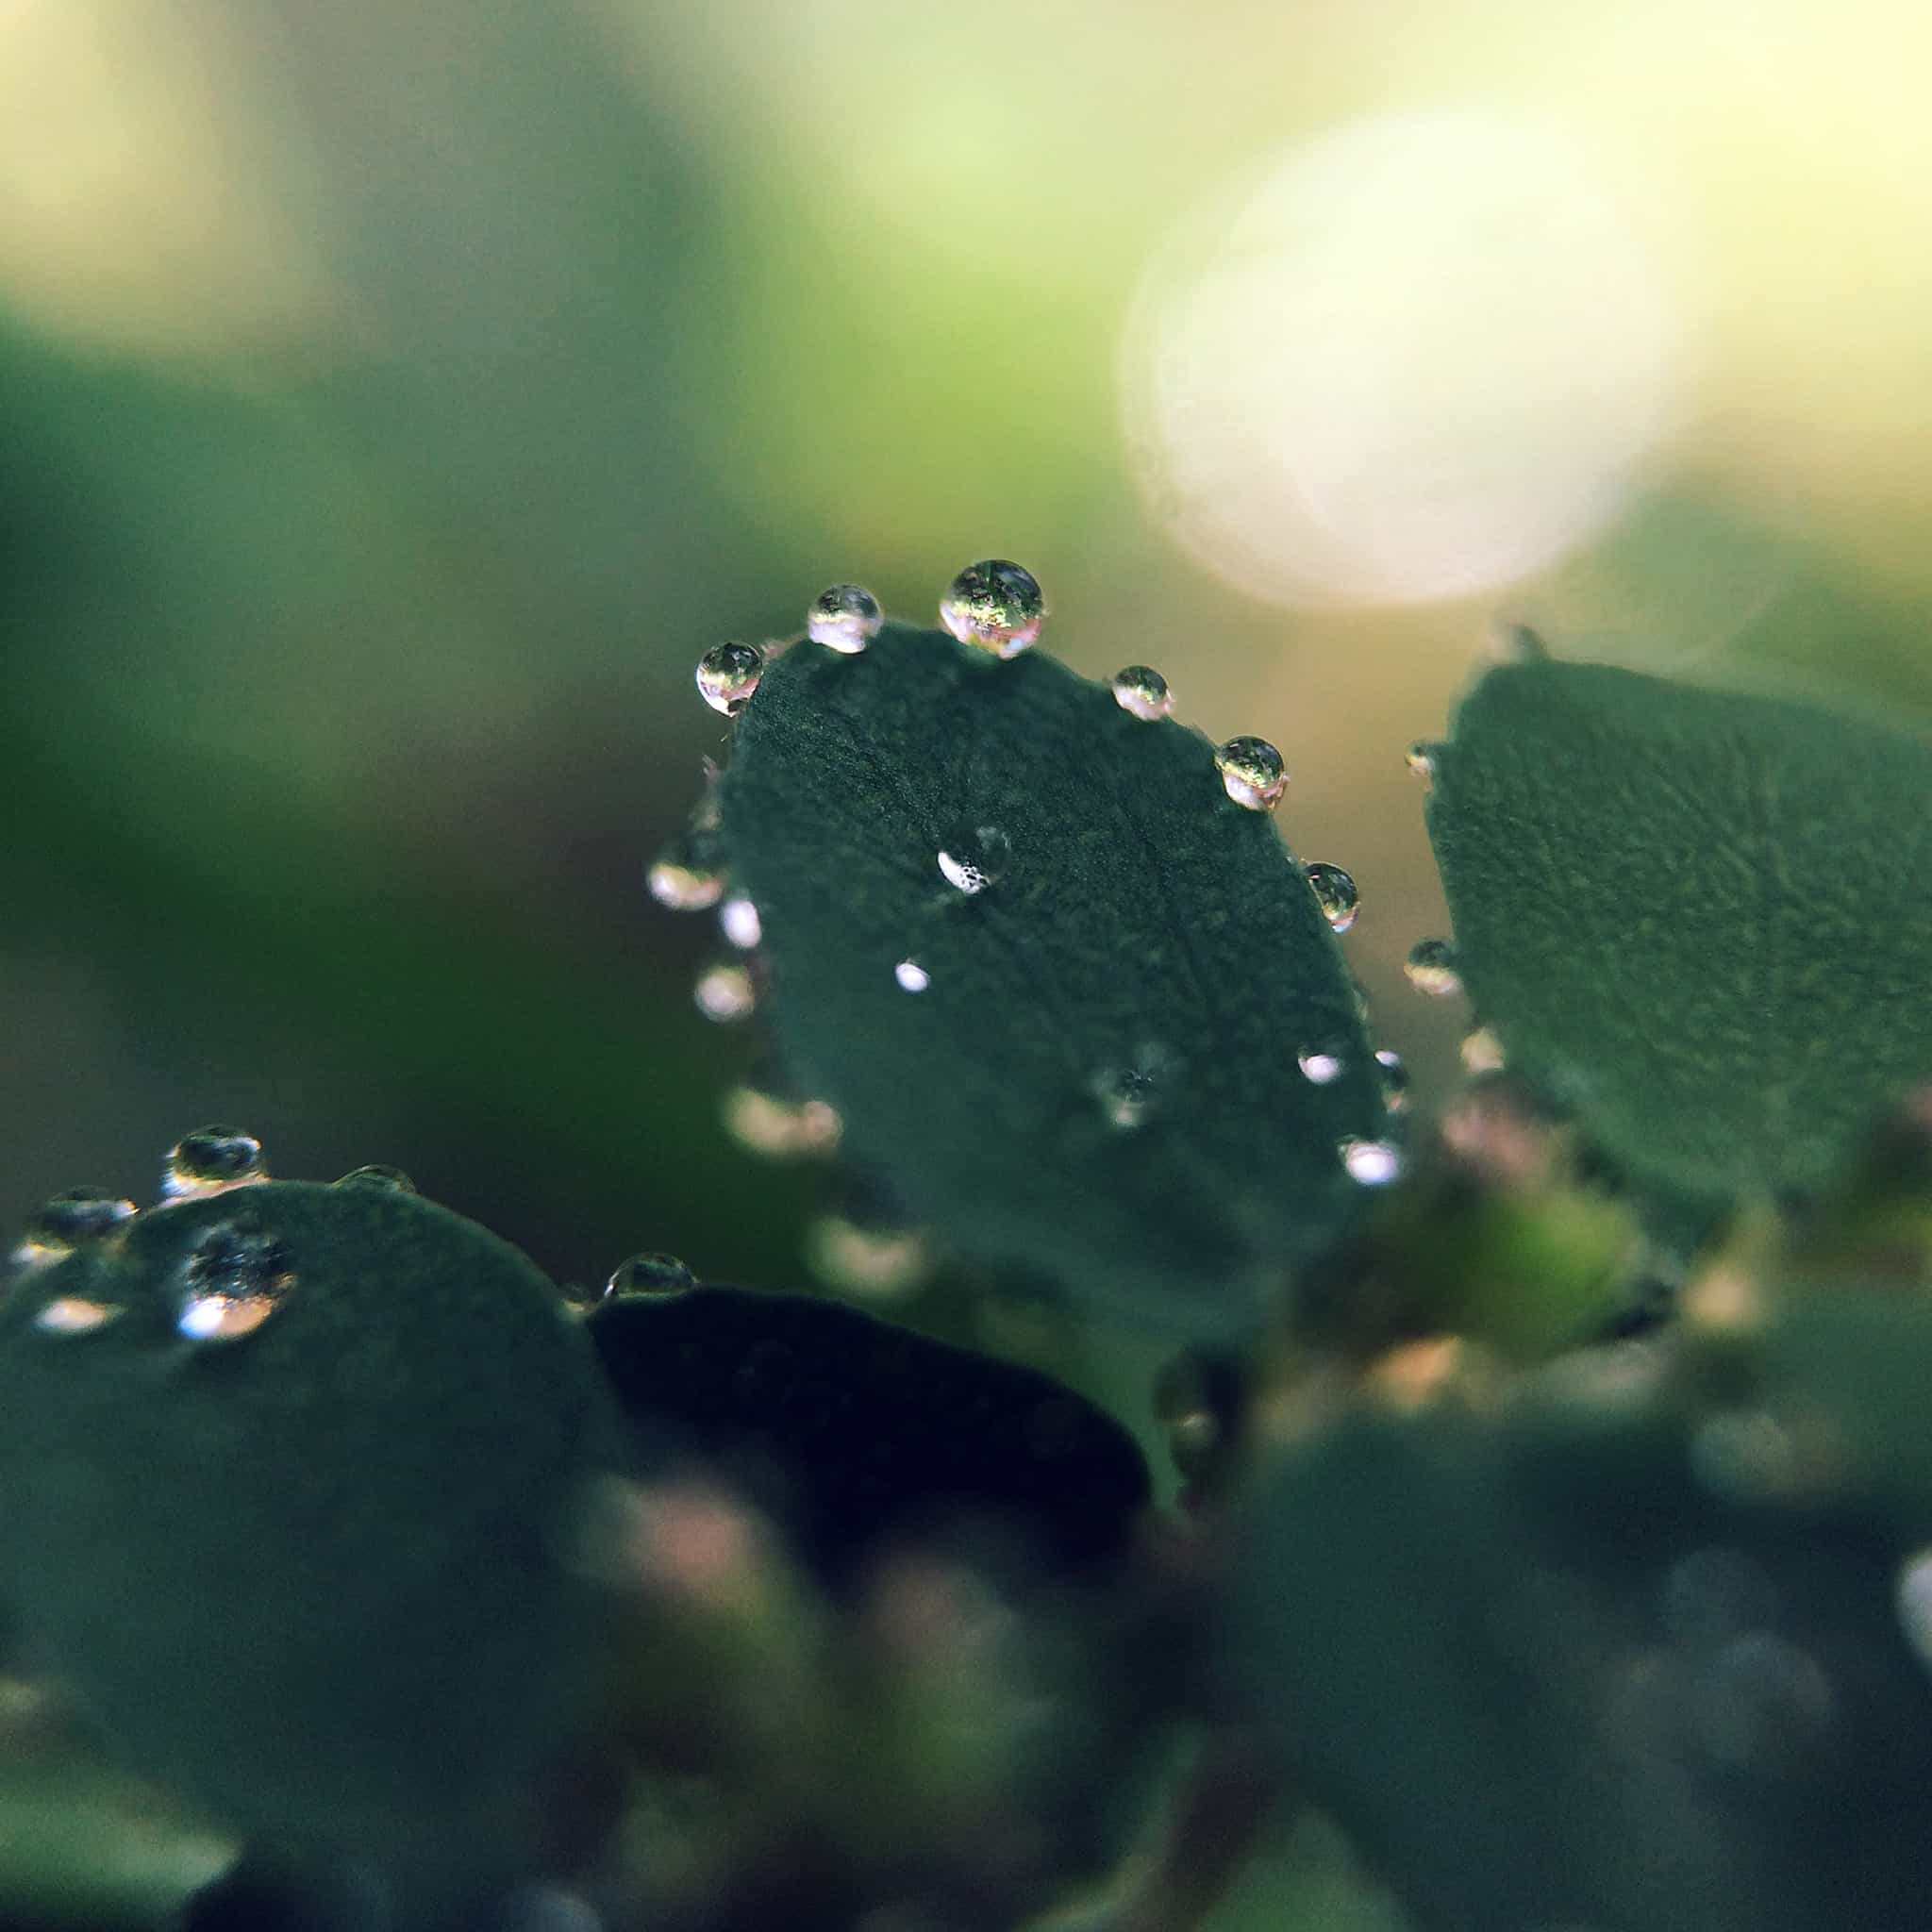 Papers.co-mv14-nature-morning-dew-leaf-flower-rain-green-android-medium